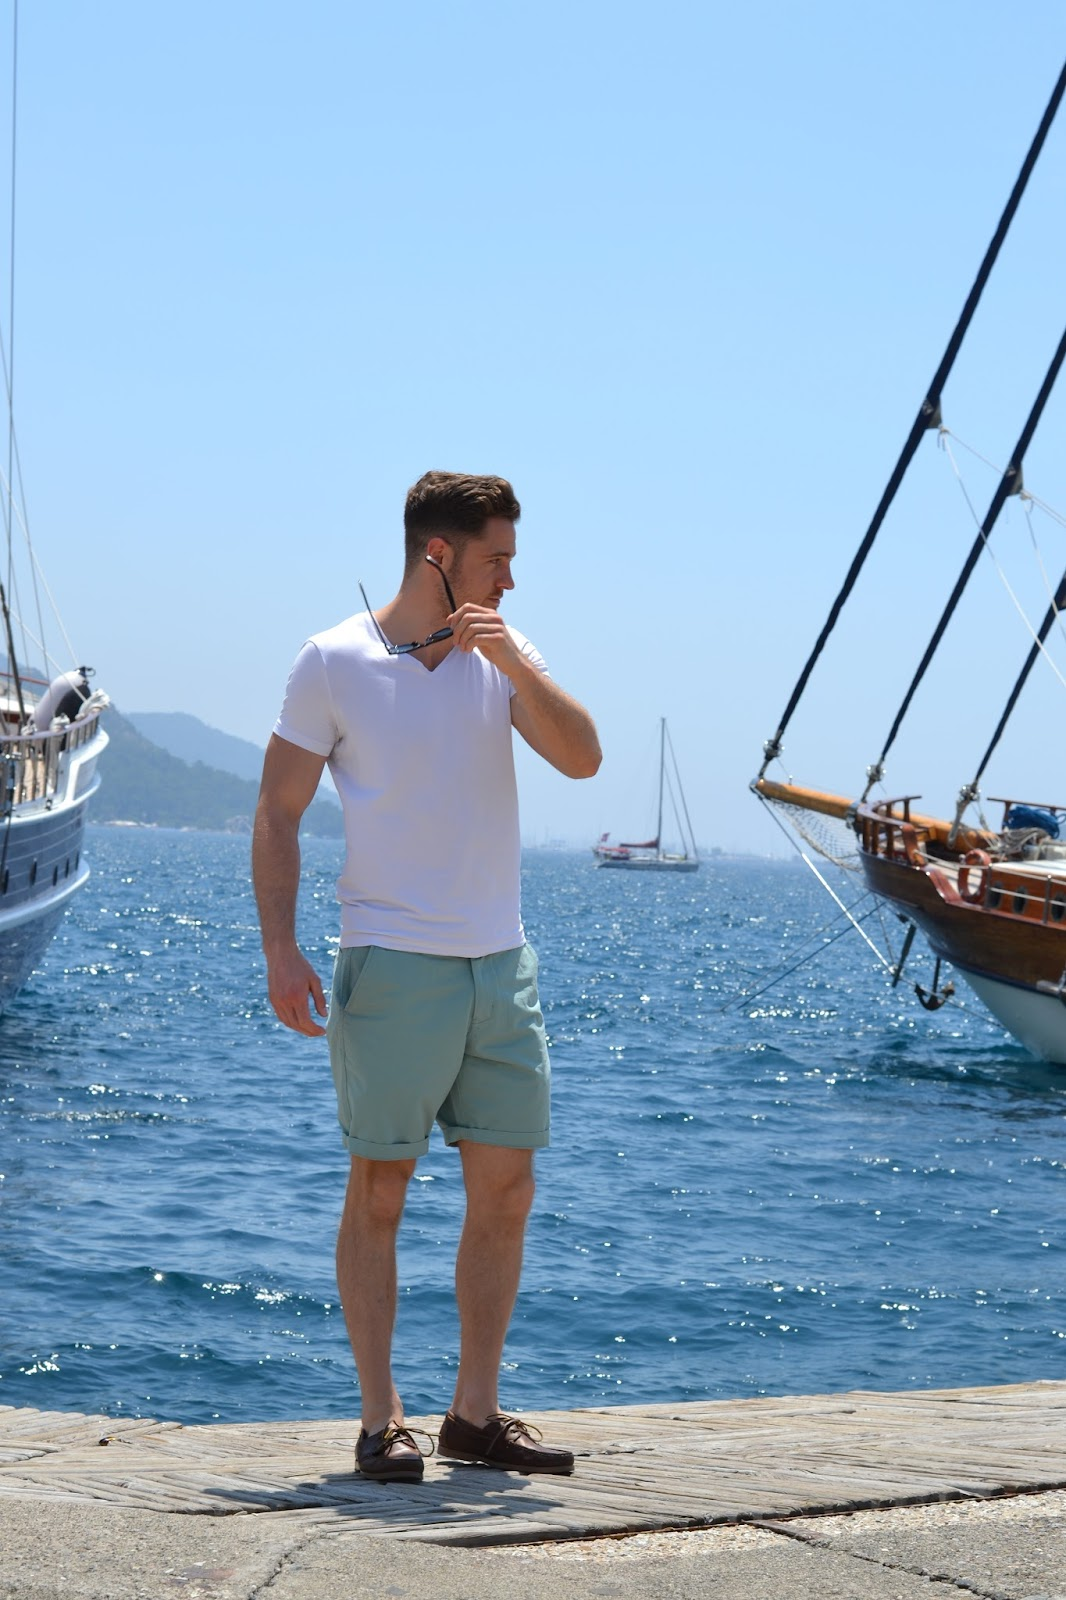 The Aegean Shoot: Part One